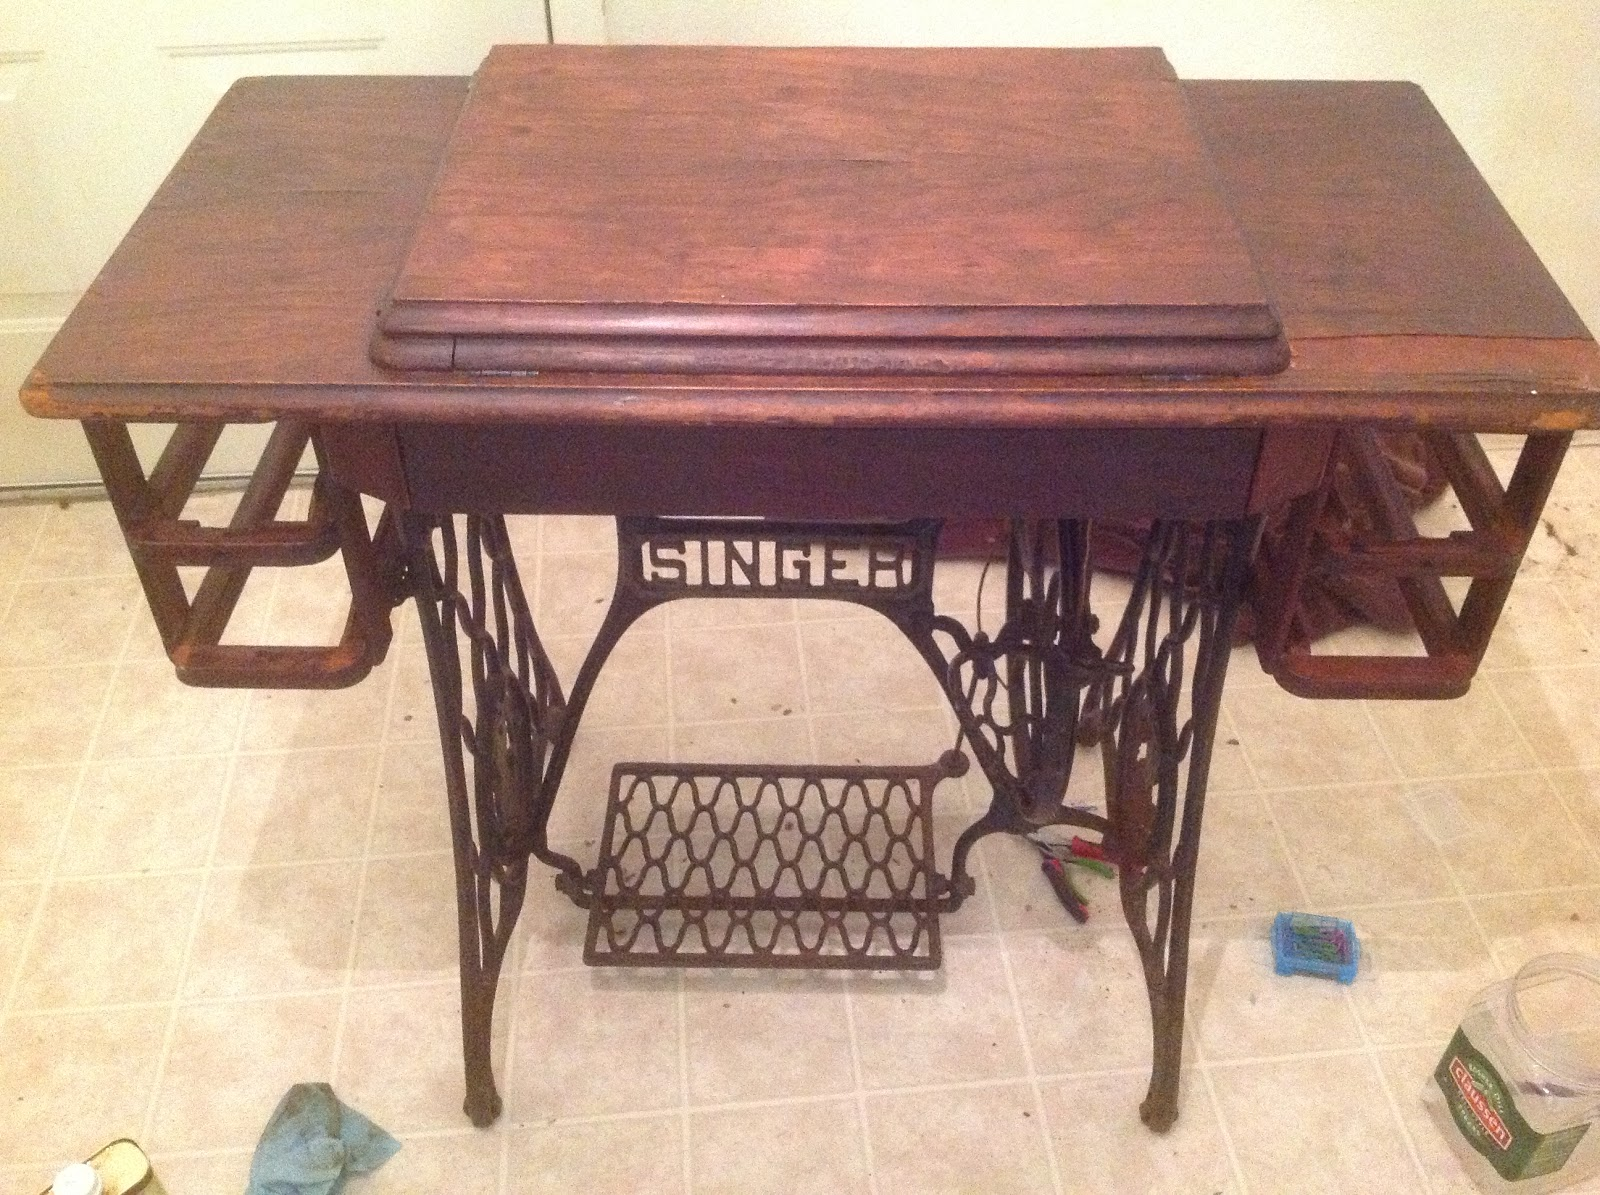 Replacing The Drawers/frames On The Singer Treadle